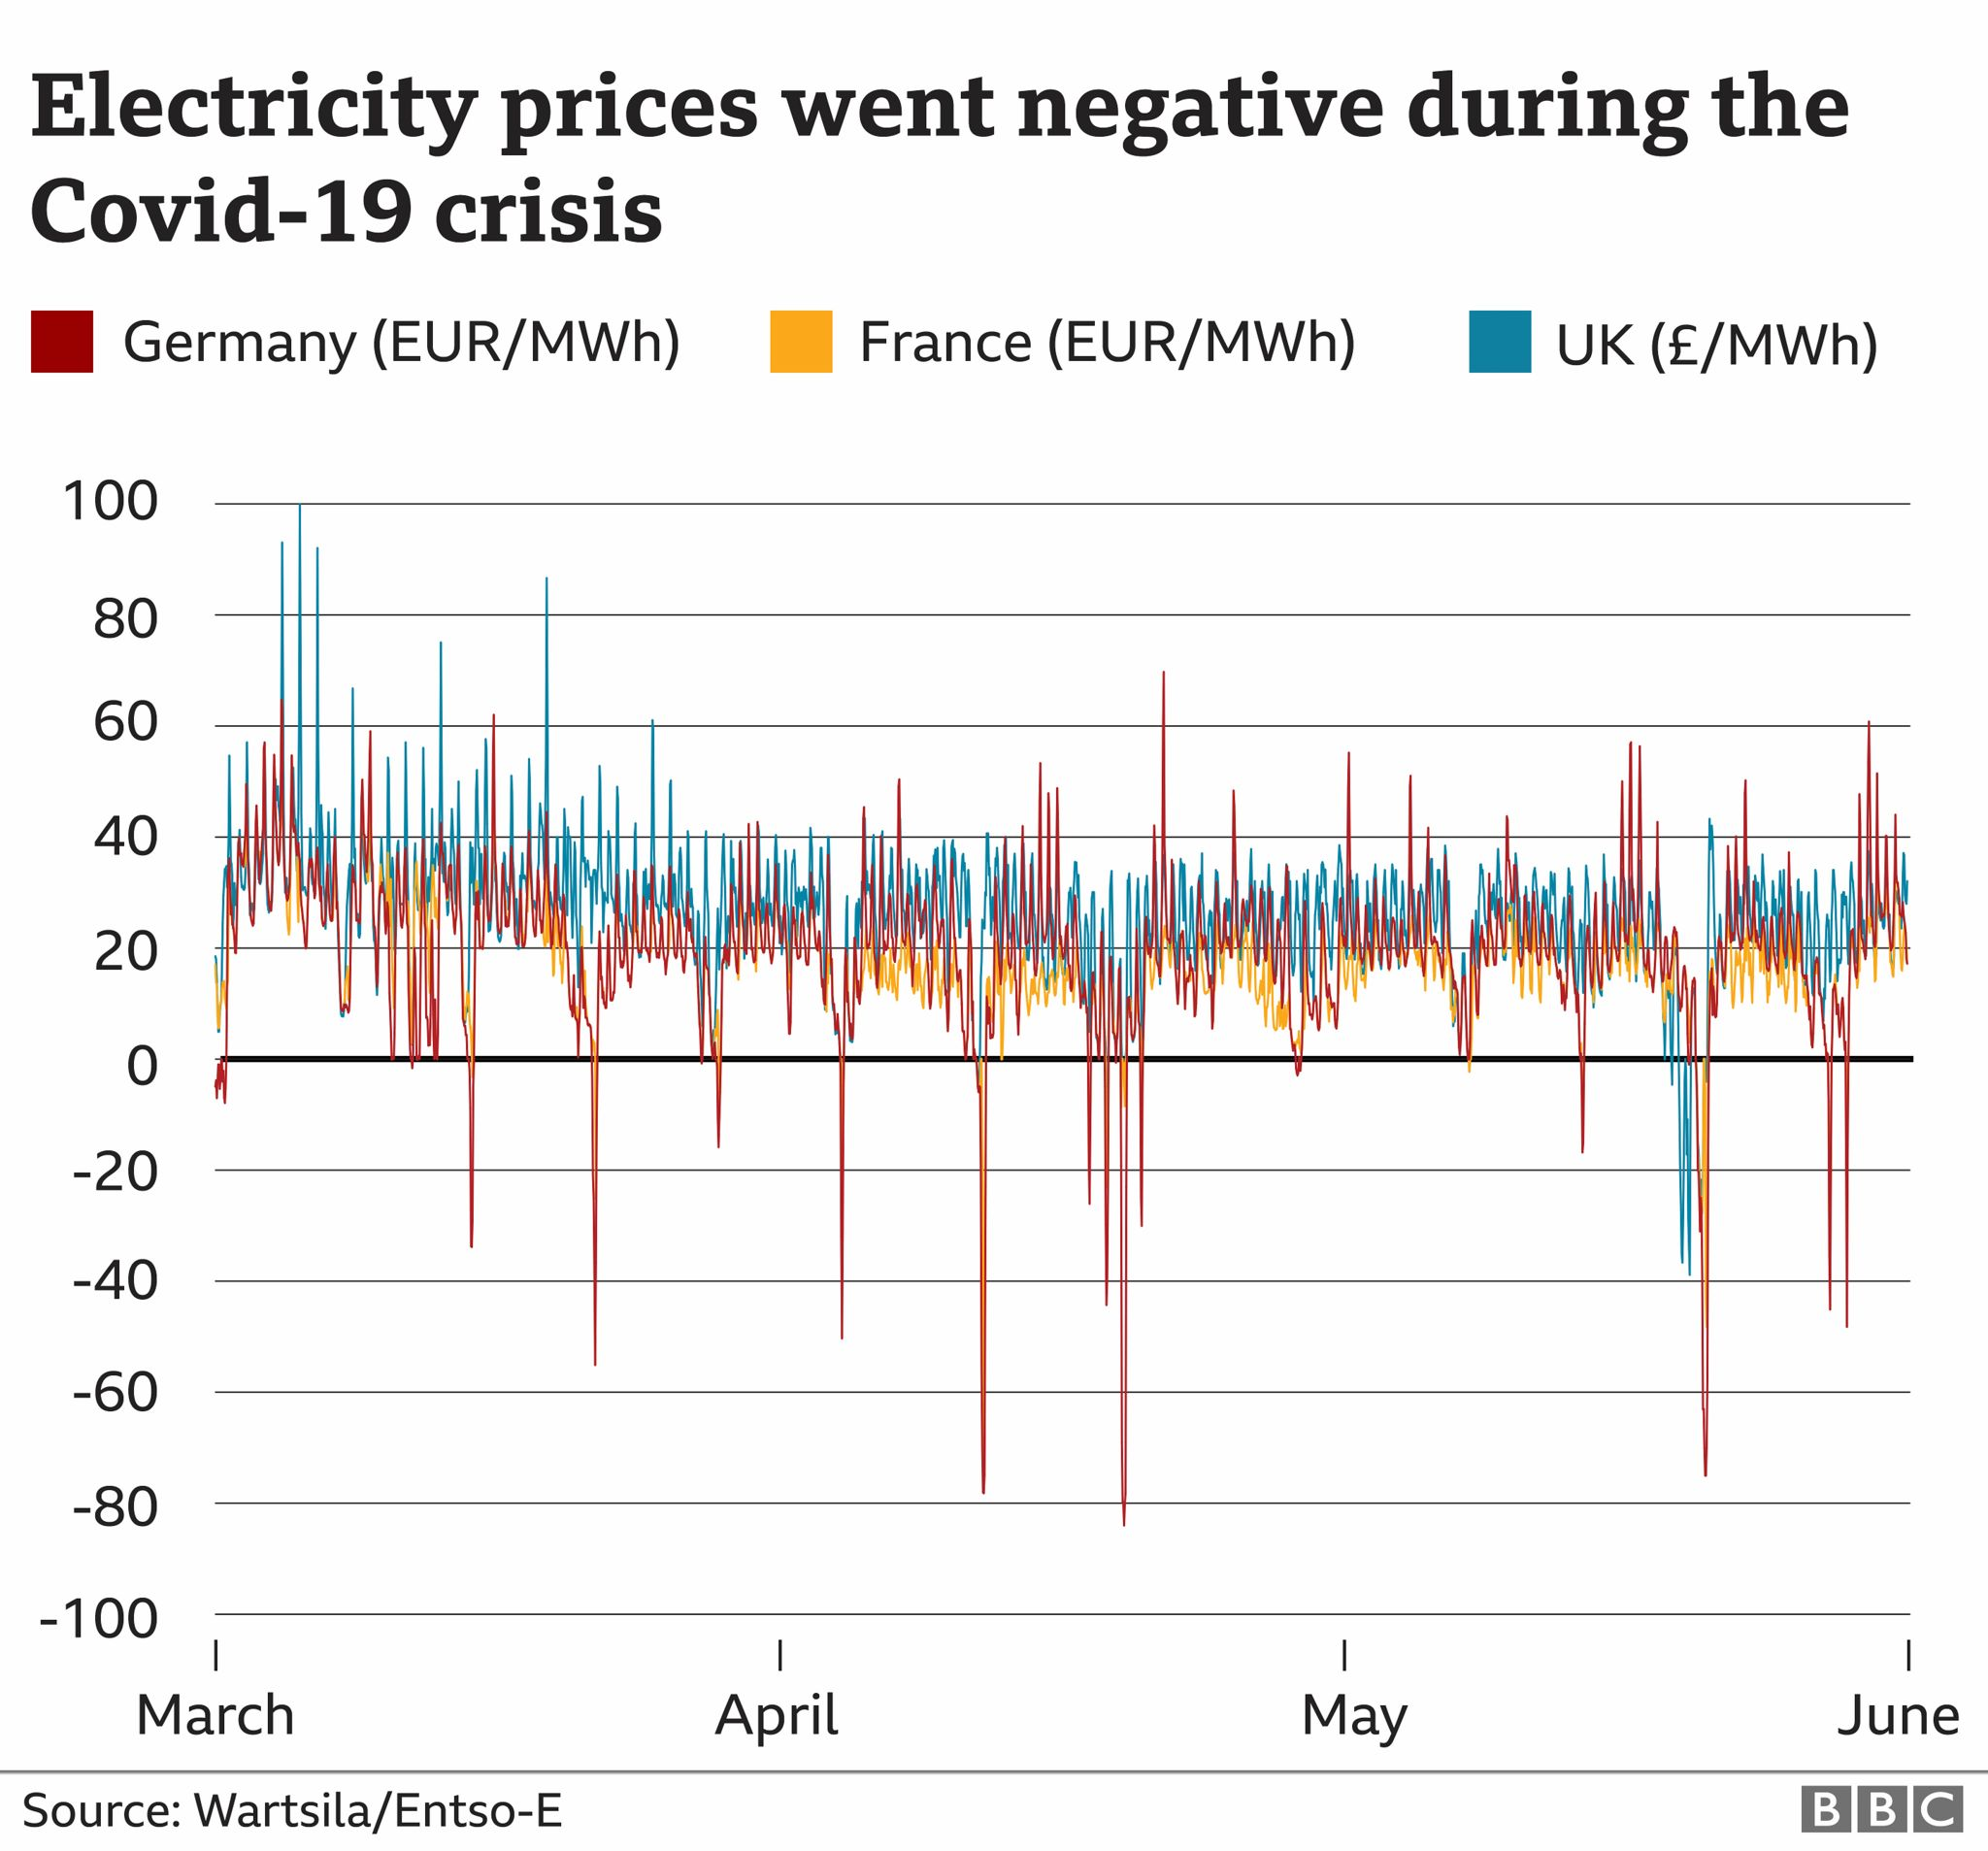 Negative electricity prices